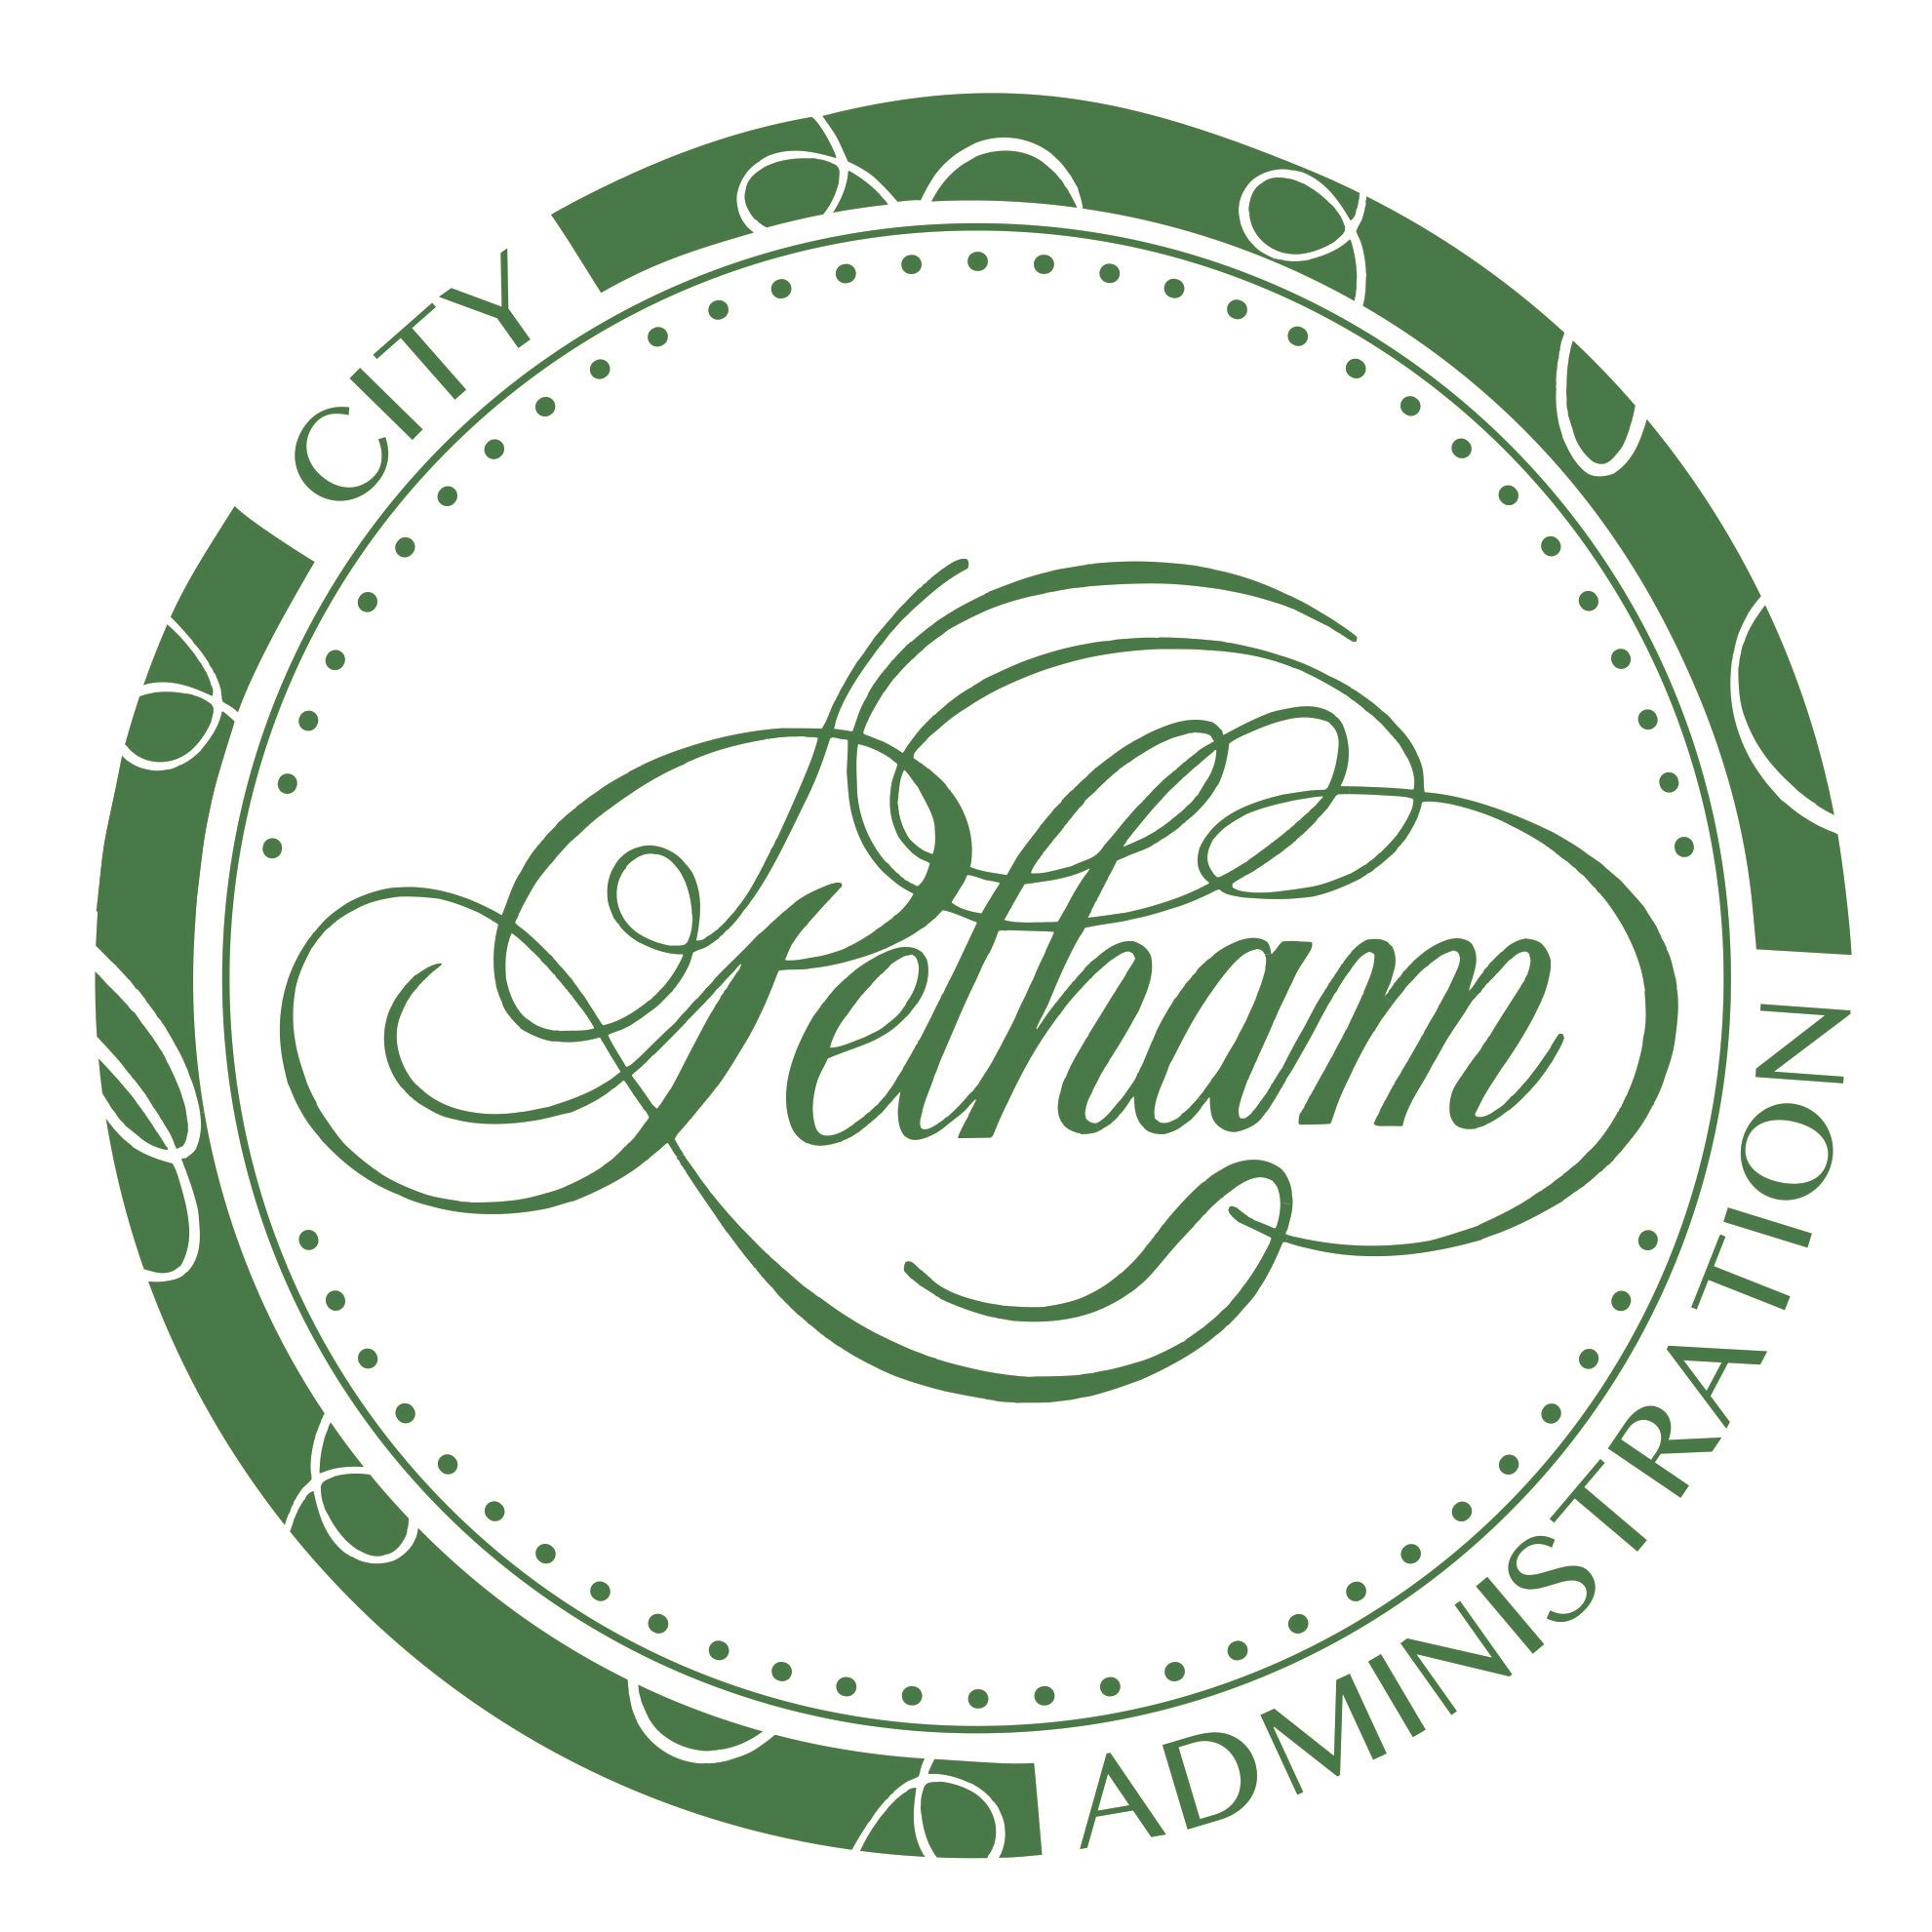 City Administration Pelham logo